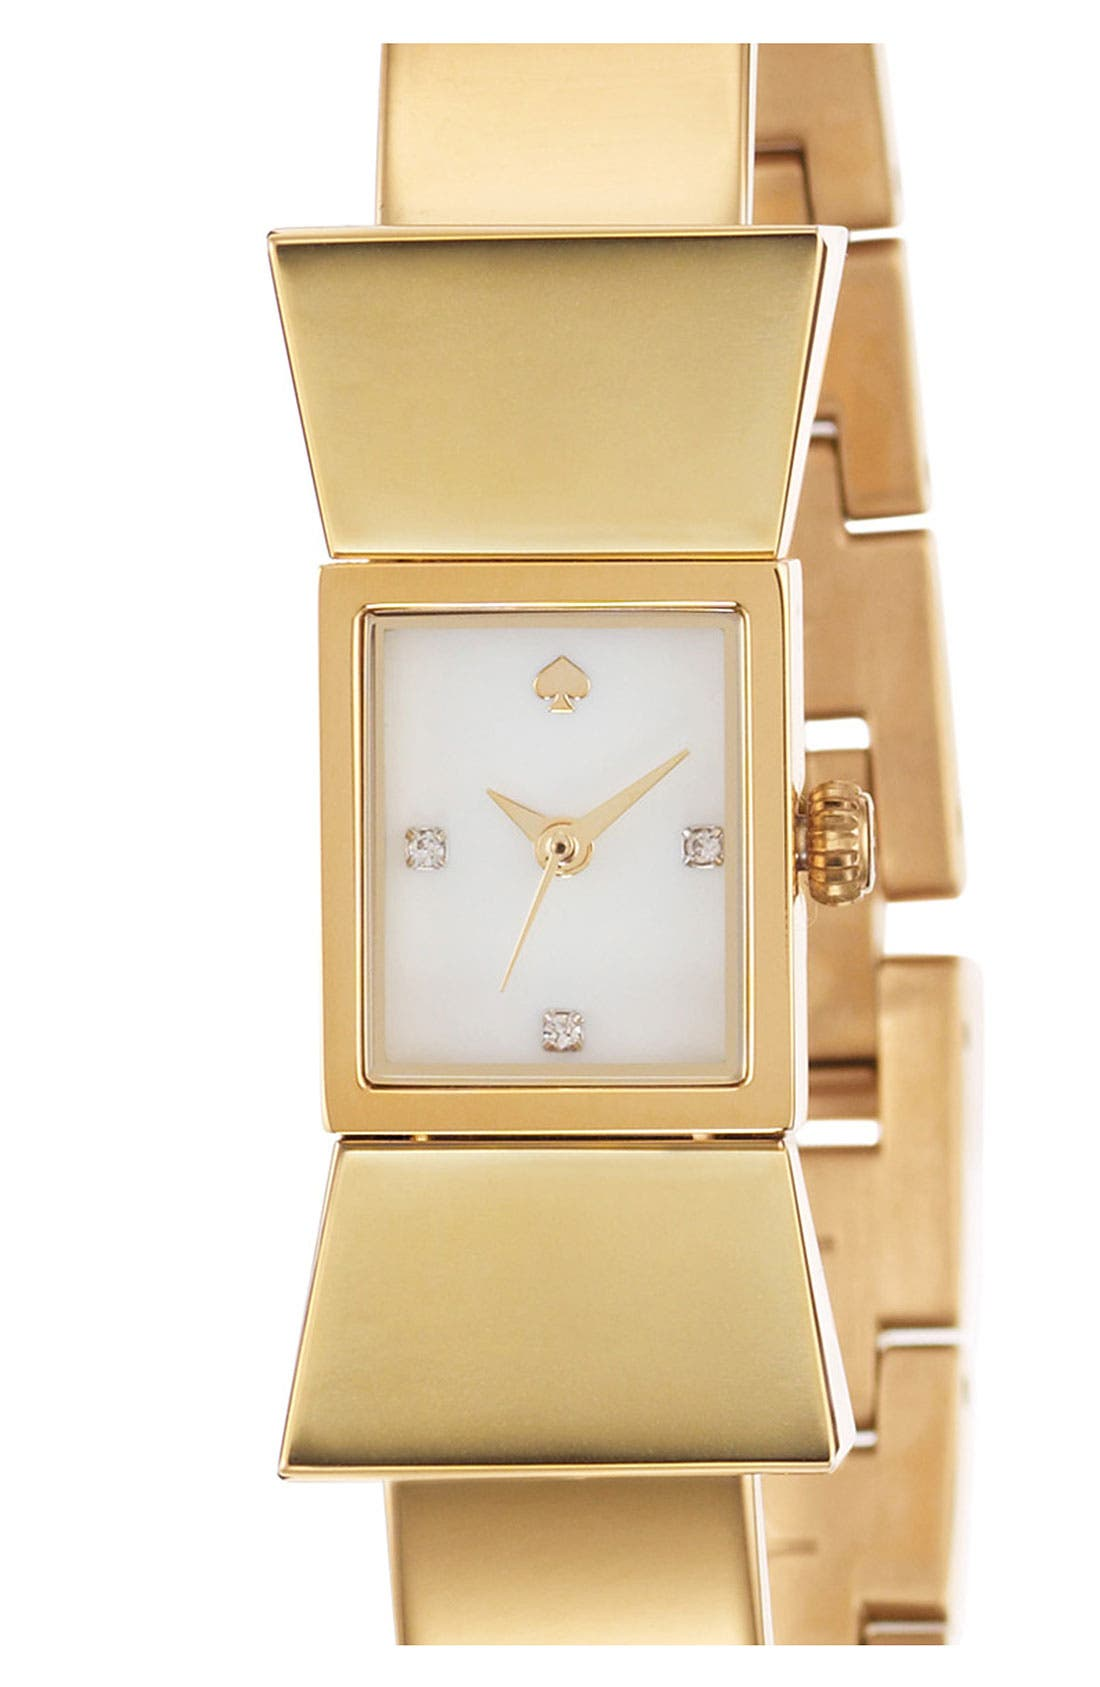 Alternate Image 1 Selected - kate spade new york 'carlyle' bangle watch, 20mm x 43mm